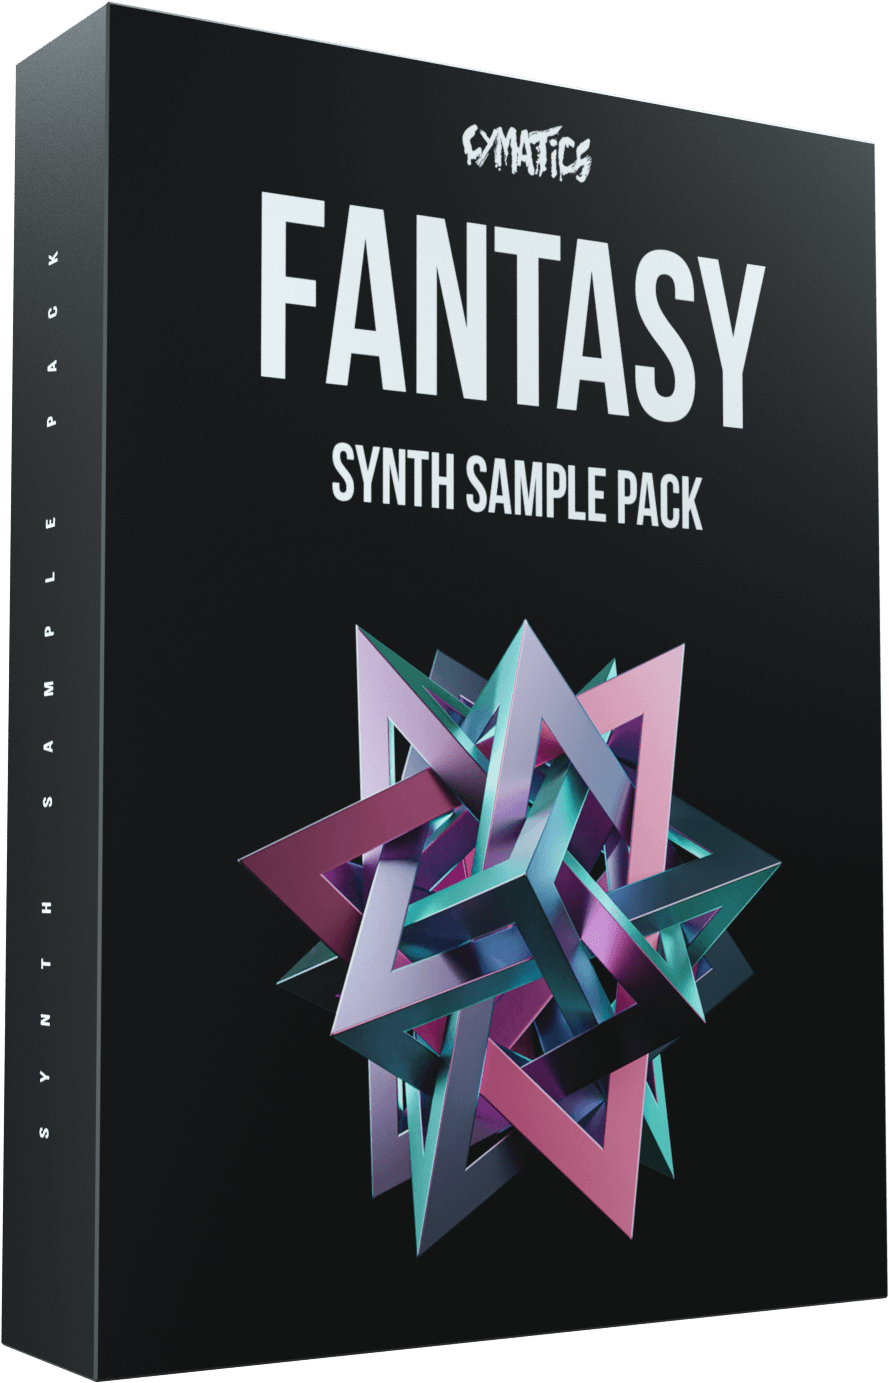 FANTASY SAMPLE PACK